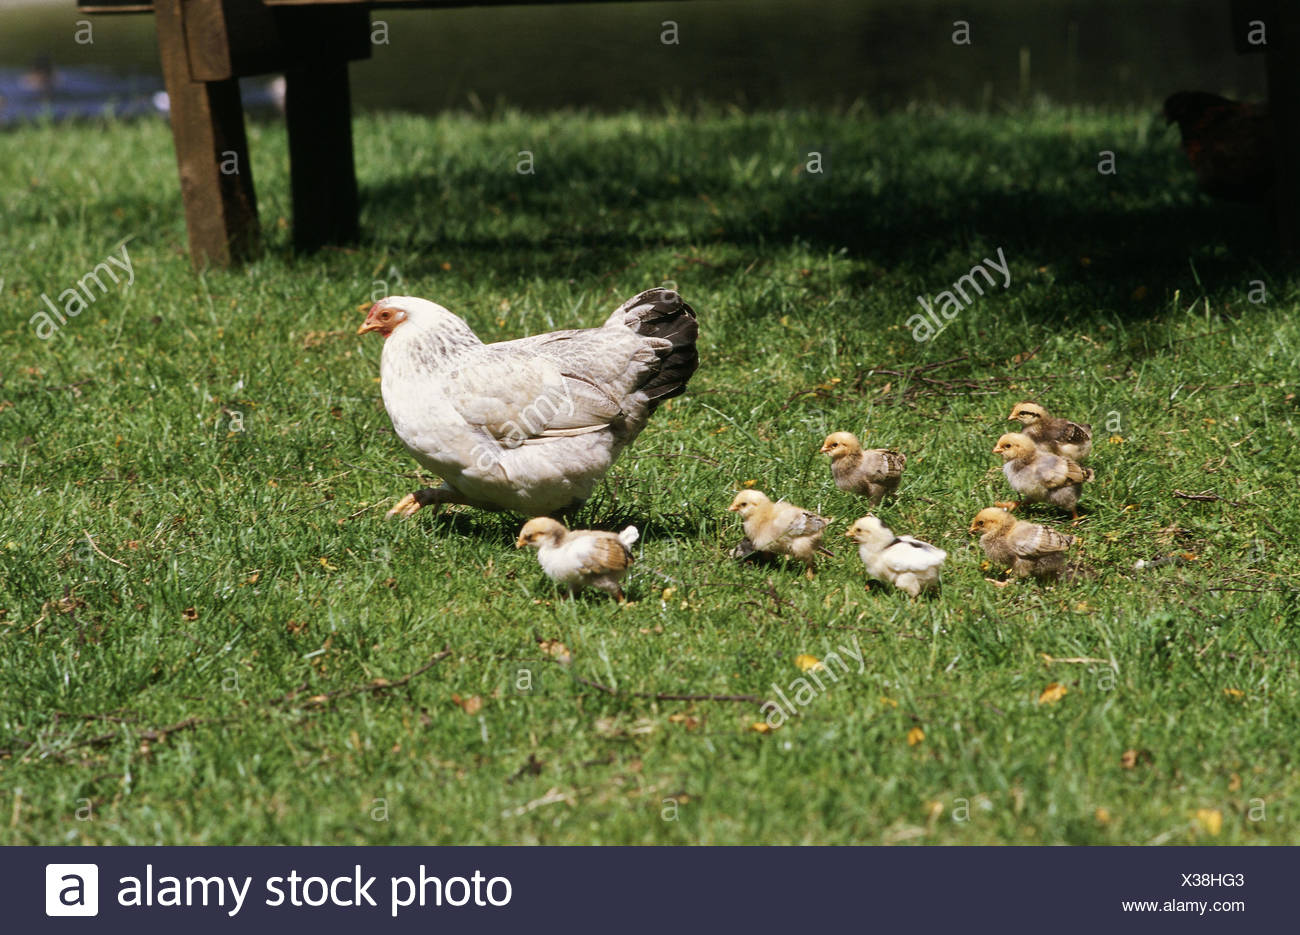 zoology / animals, avian / birds, chicken, (Gallus gallus domesticus), hen with chicks in meadow, distribution: worldwide, - Stock Image